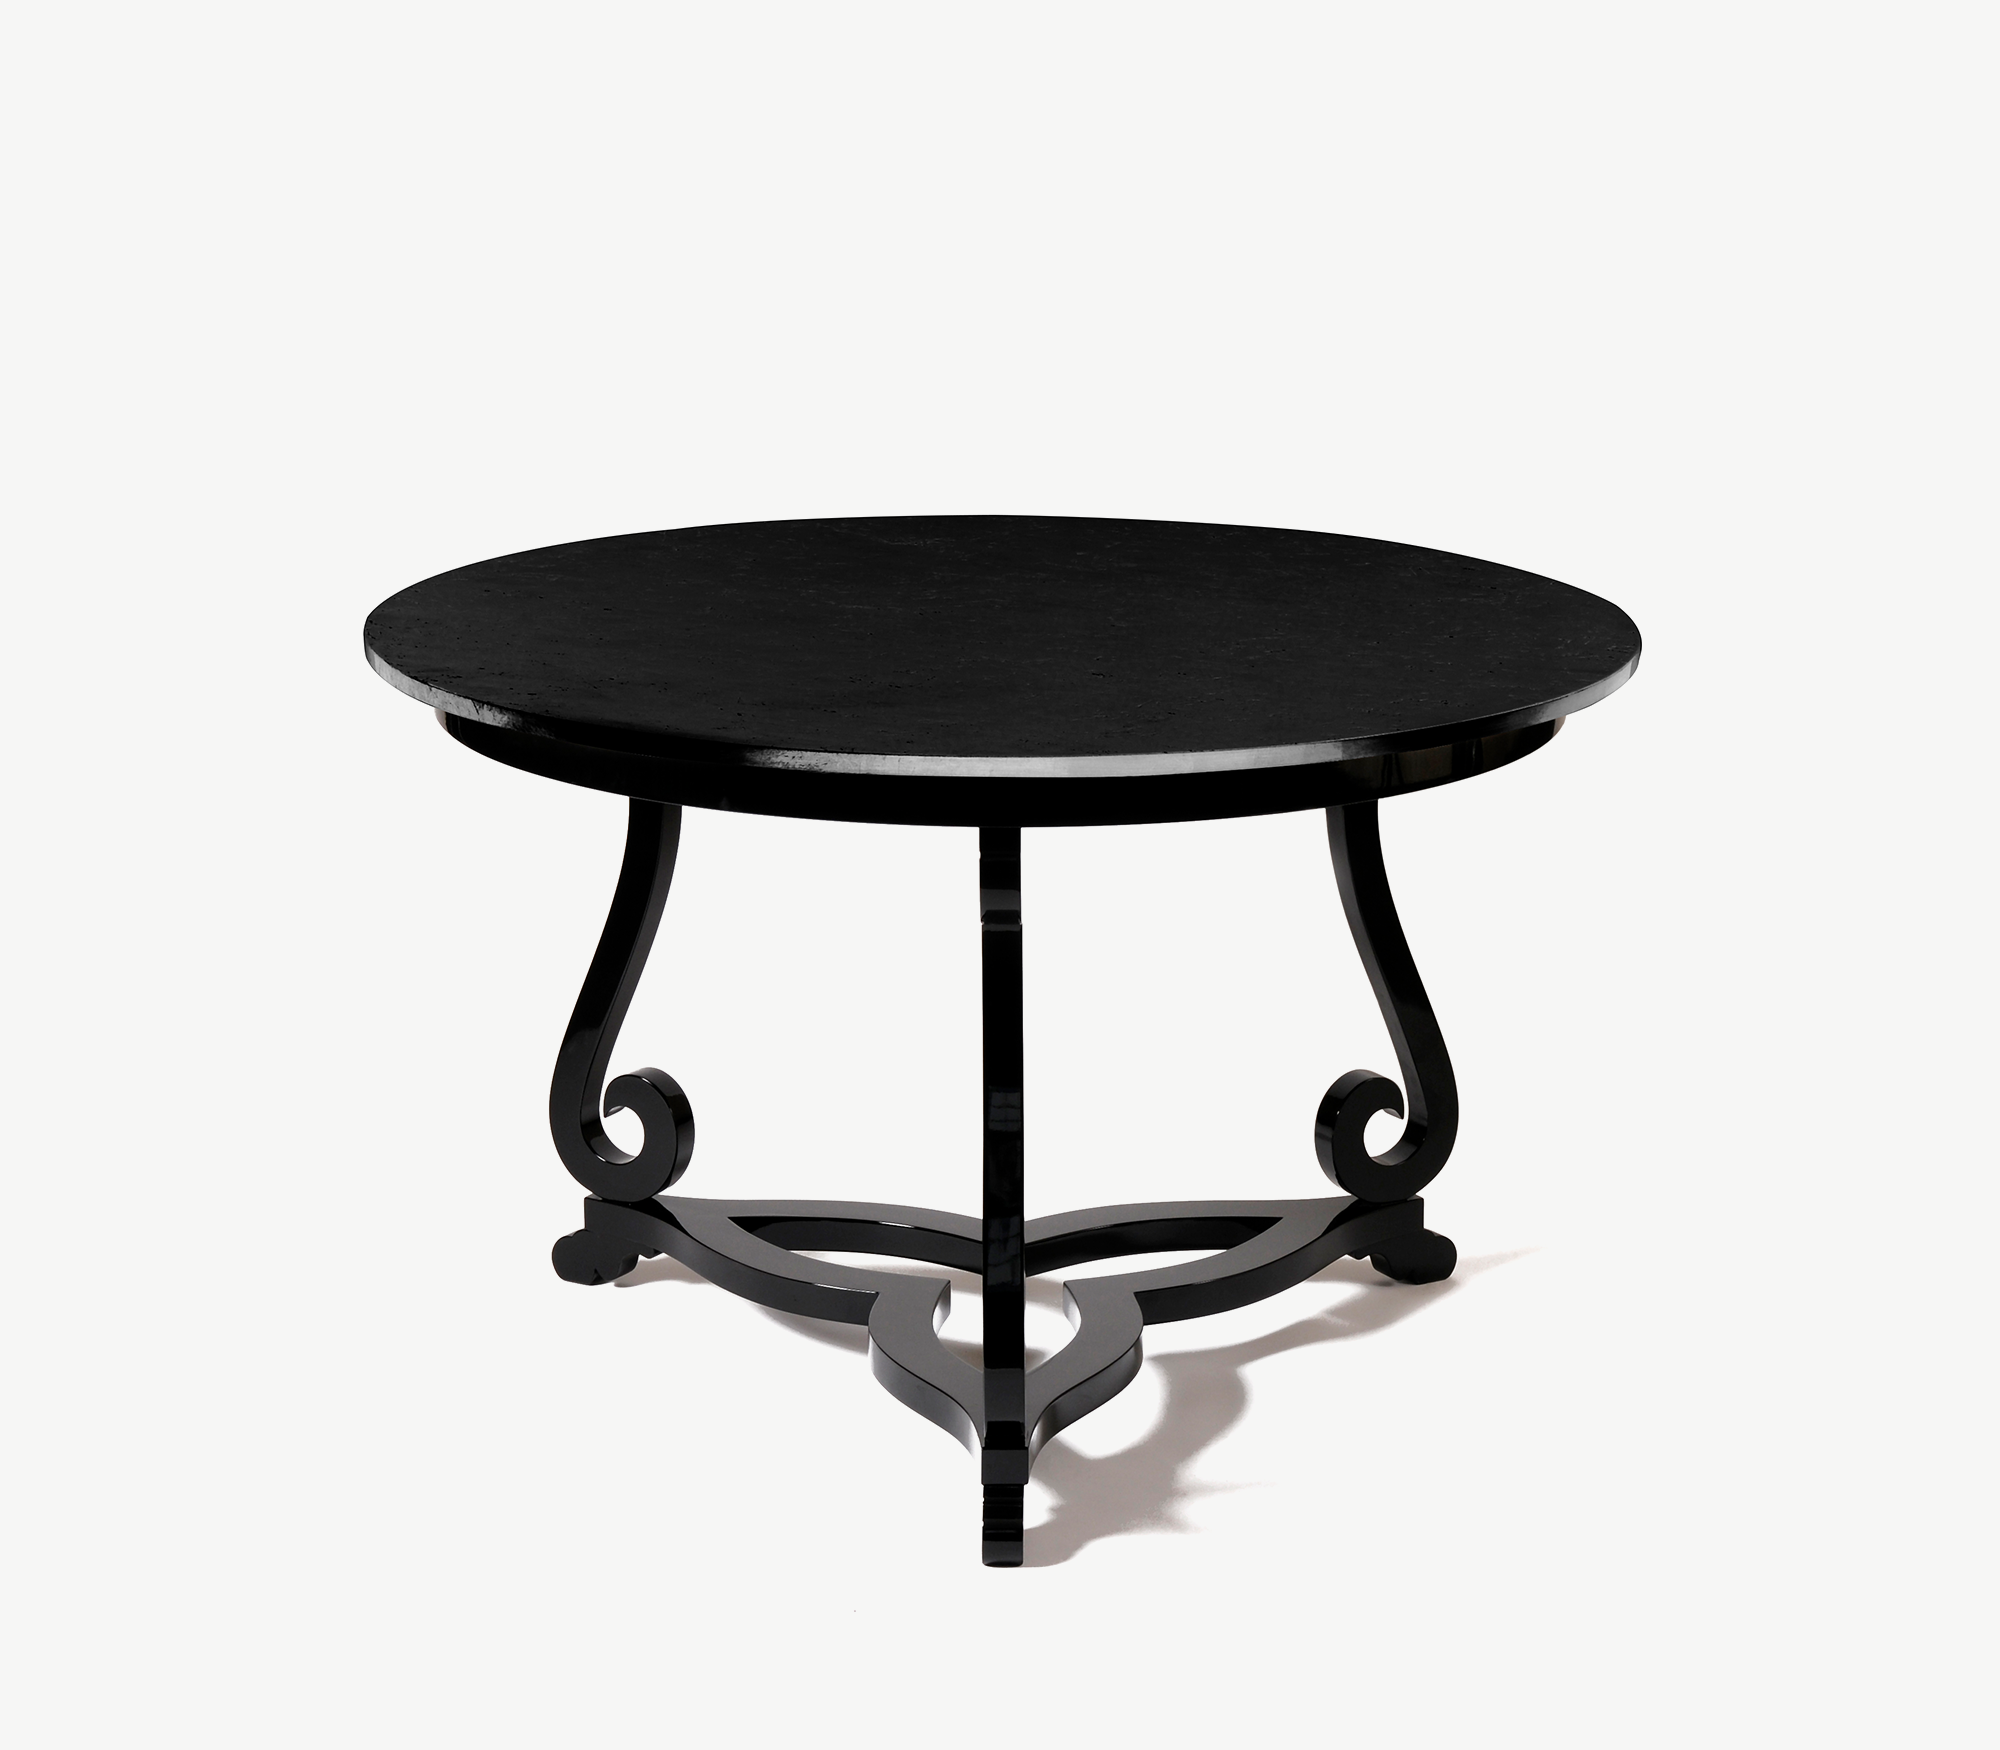 Flourish Pedestal Table by Boca do Lobo